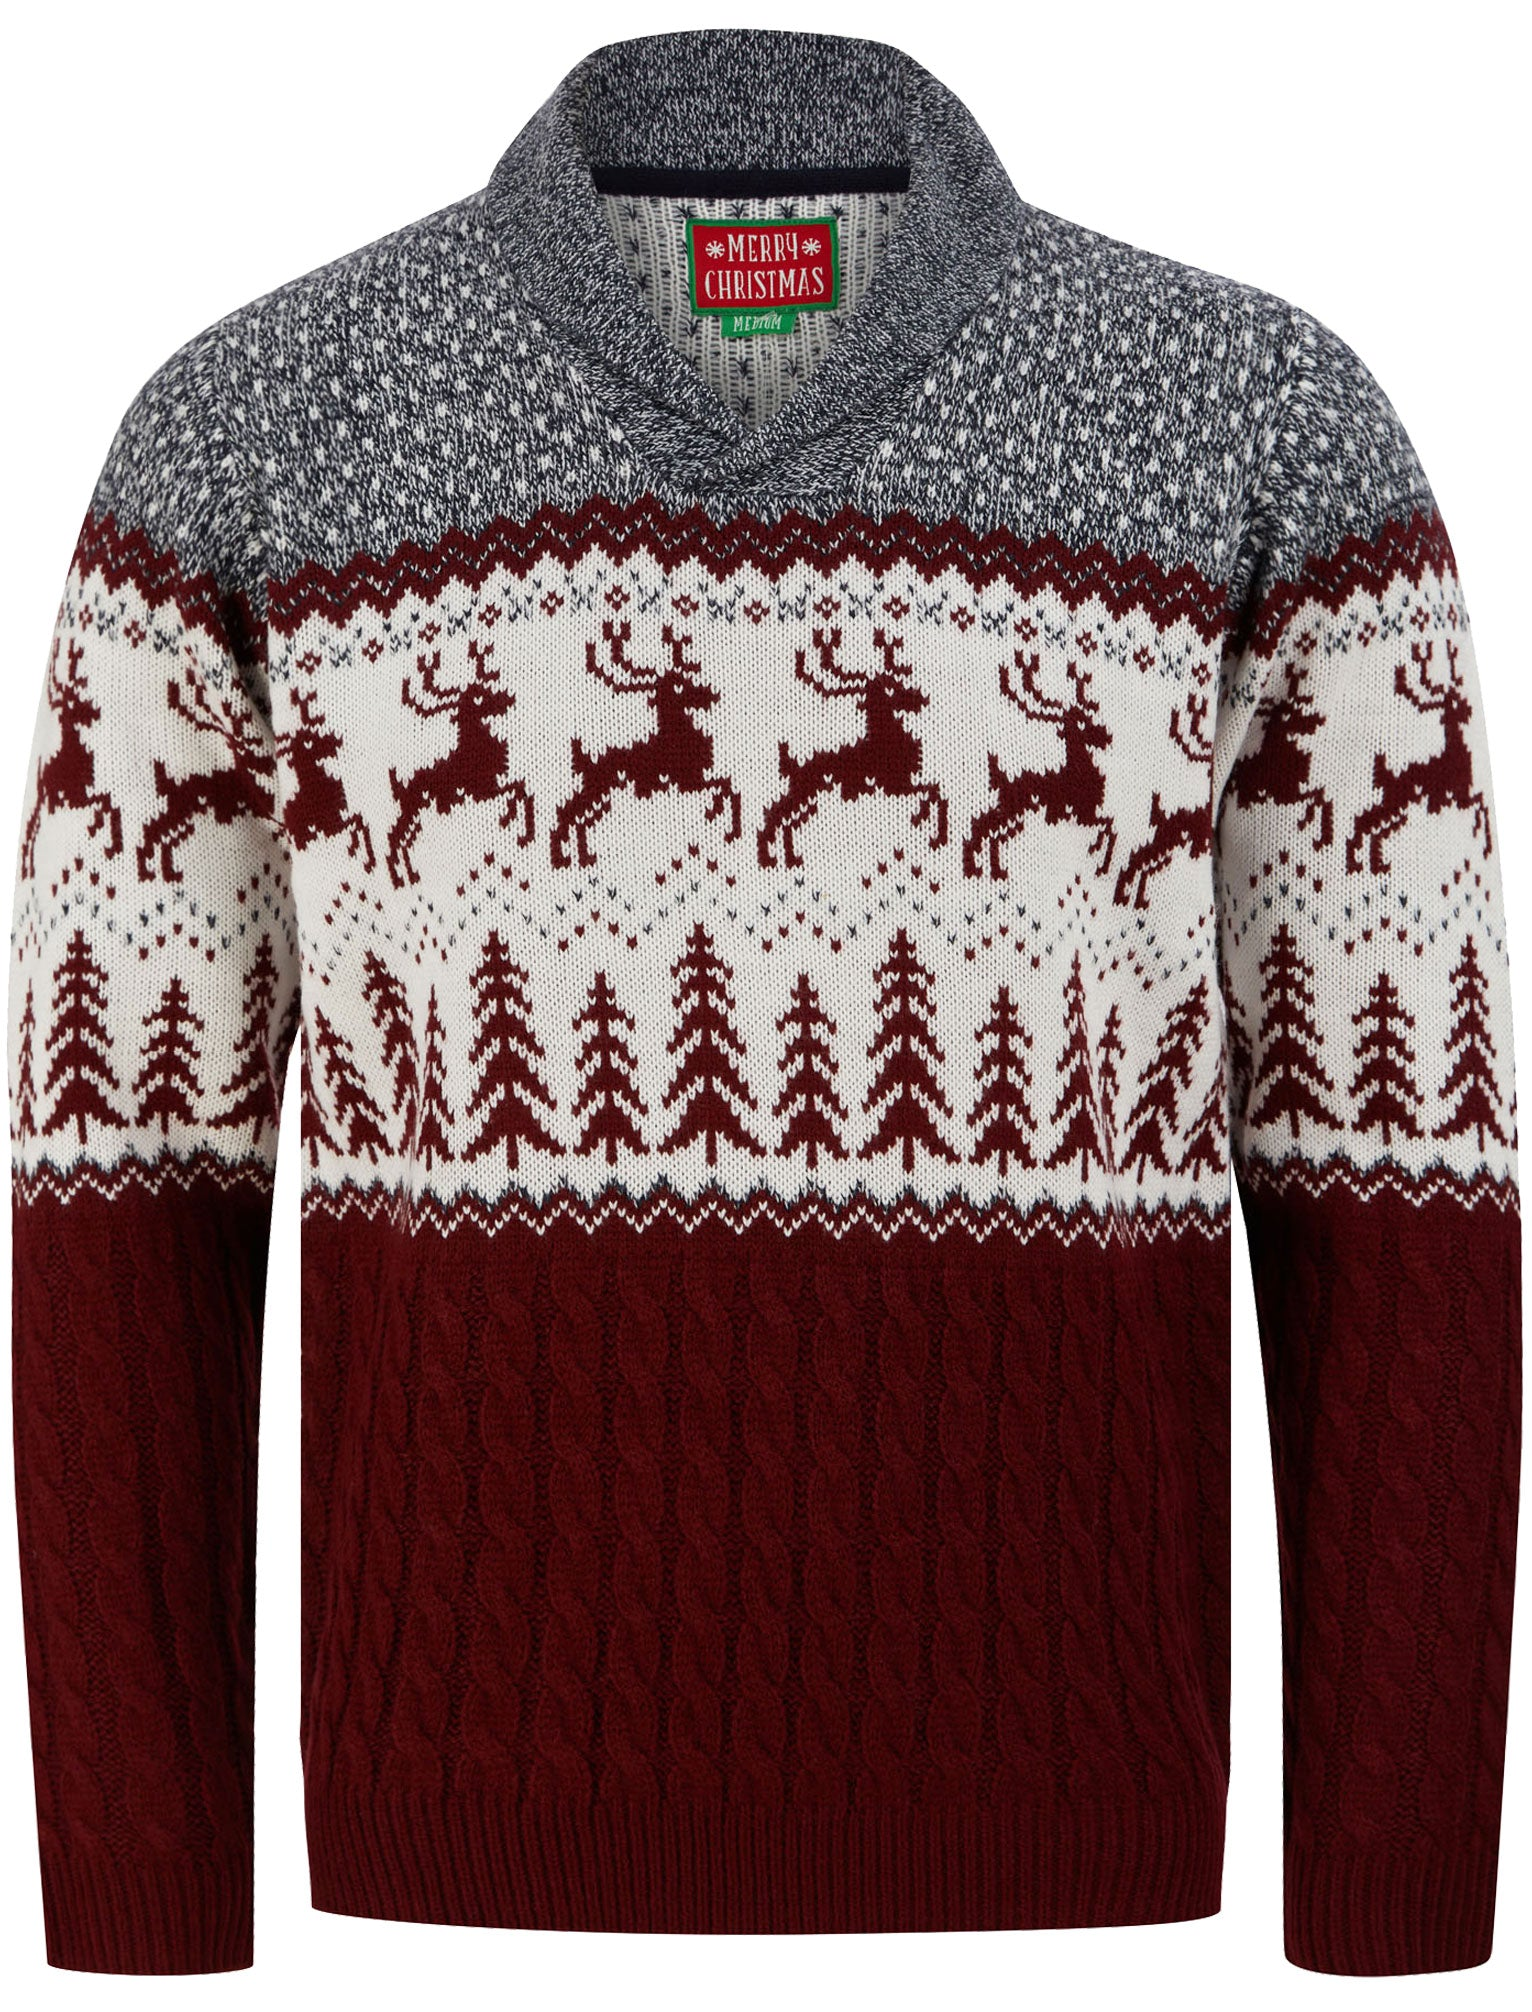 Men's Vintage Sweaters, Retro Jumpers 1920s to 1980s Jumpers Jumping Deer Shawl Neck Jacquard Knit Jumper in Claret  Merry Christmas  XXL - Tokyo Laundry £24.99 AT vintagedancer.com